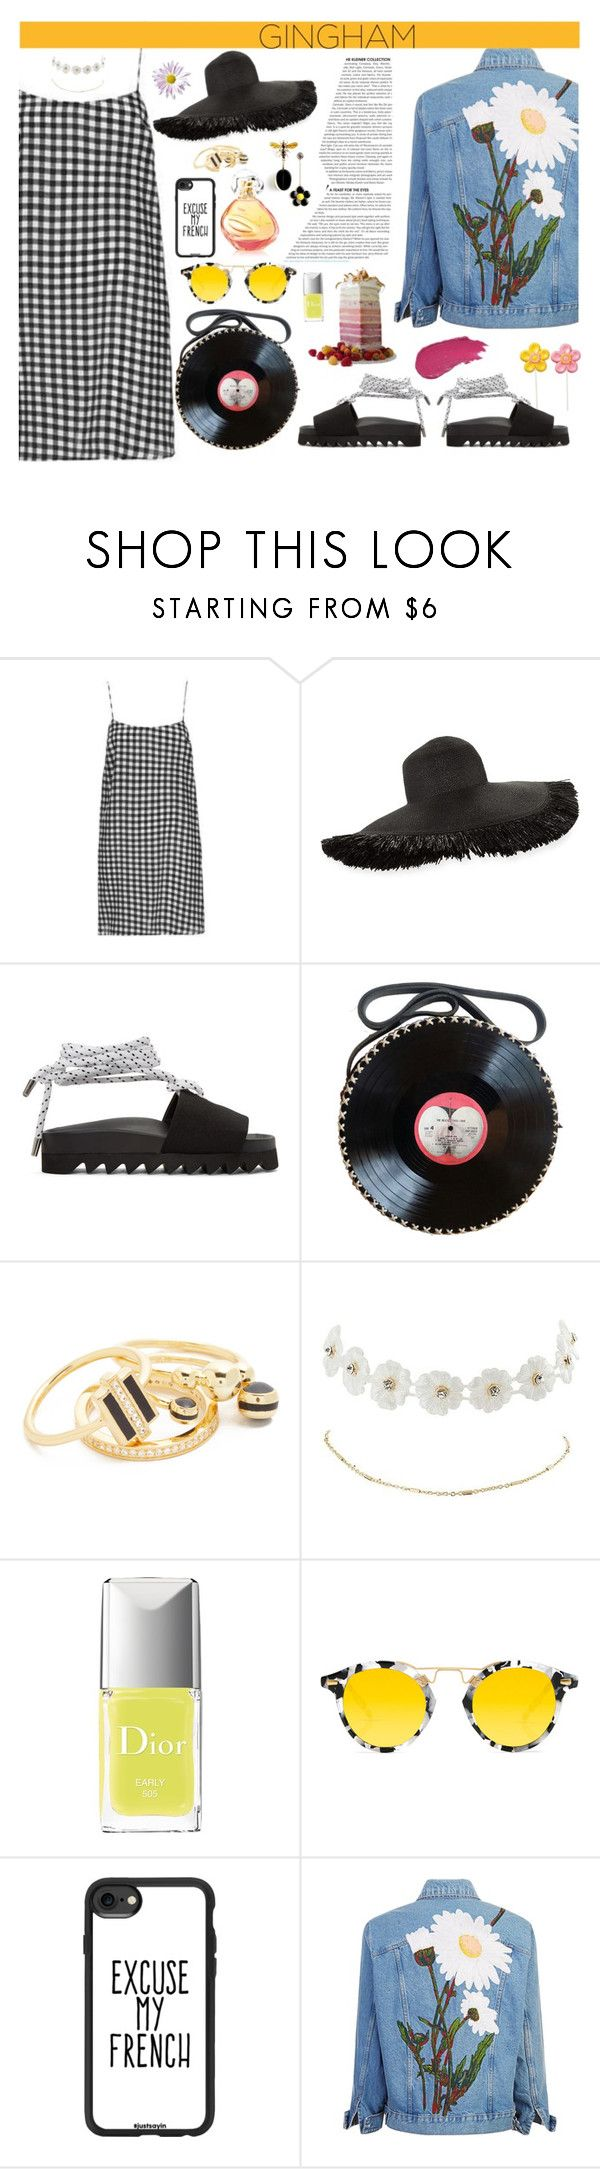 """Gingham Dress"" by simpleautumn ❤ liked on Polyvore featuring Eric Javits, Joshua's, Noir Jewelry, Charlotte Russe, Lumene, Krewe and Casetify"